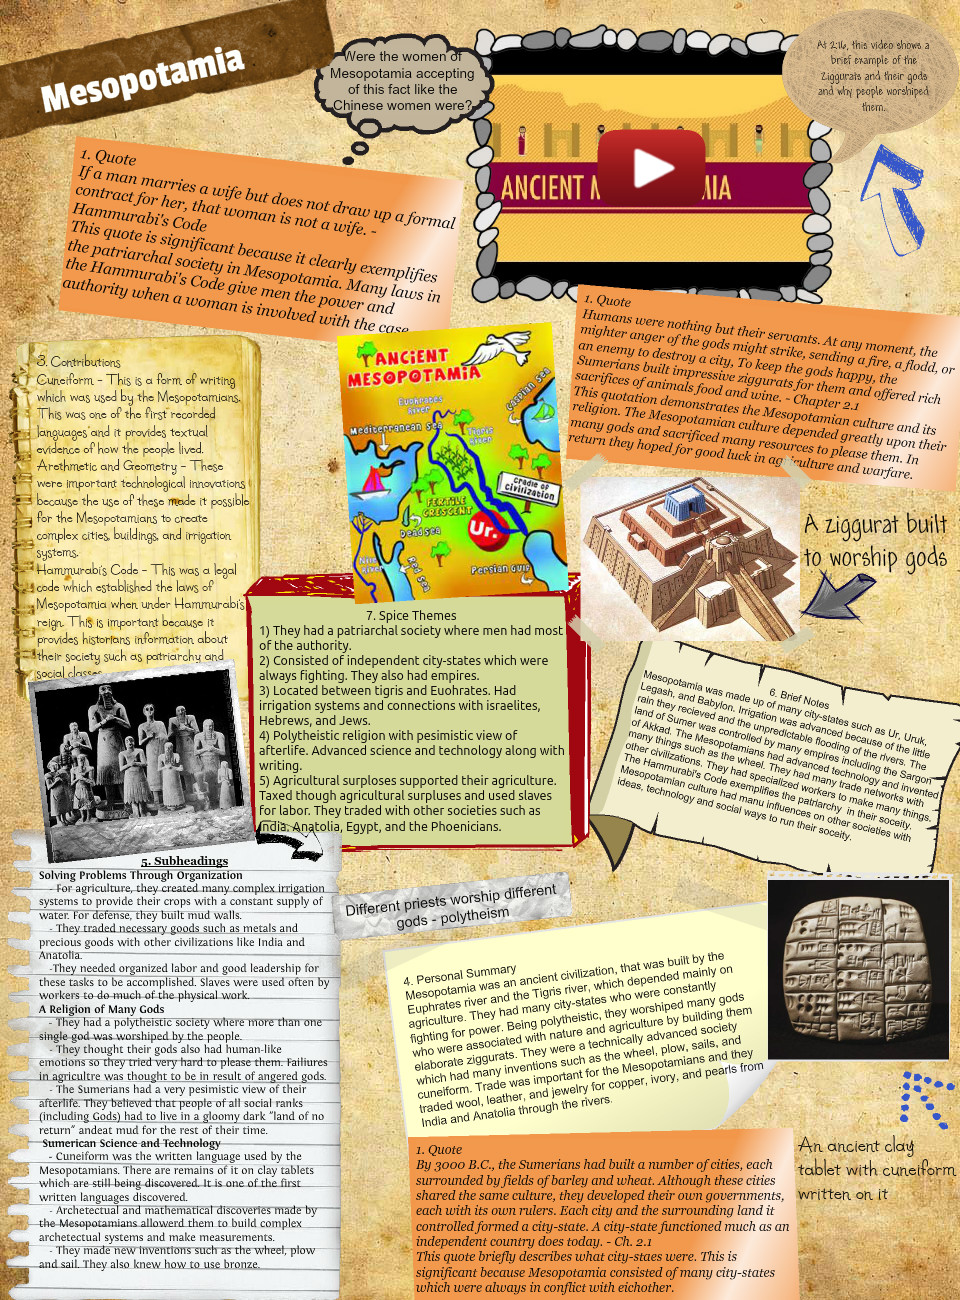 Mesopotamia ancient en history mesopotamia social studies brief notesmesopotamia was made up of many city states such as ur uruk legash and babylon irrigation was advanced because of the little rain they altavistaventures Gallery